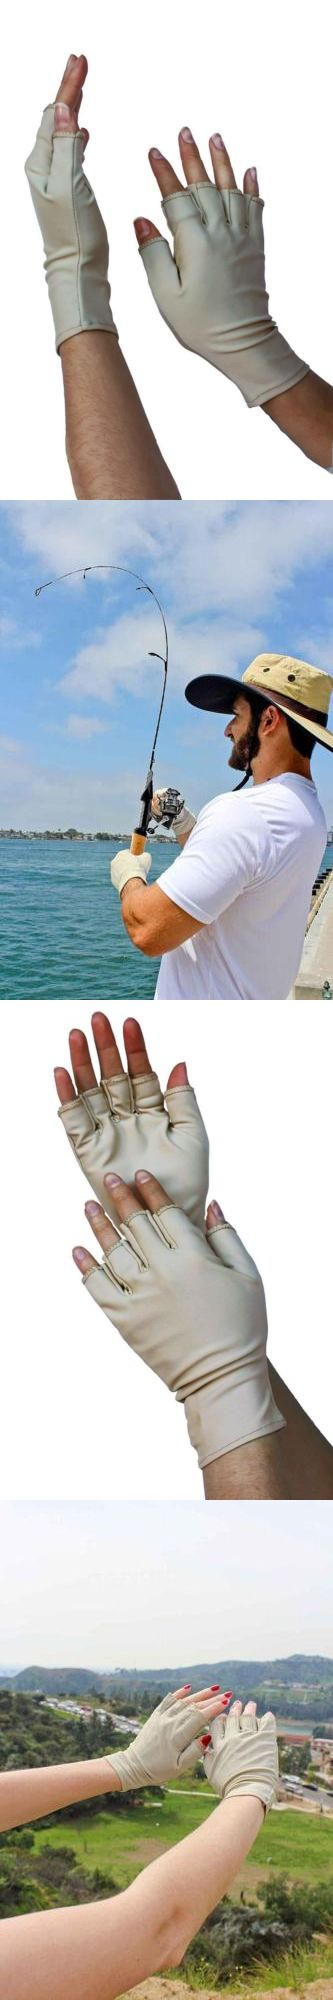 Gloves 65974: Men And Women S Outdoor Activity Fishing Fingerless Sun Protection Gloves, Beige -> BUY IT NOW ONLY: $33.32 on eBay!